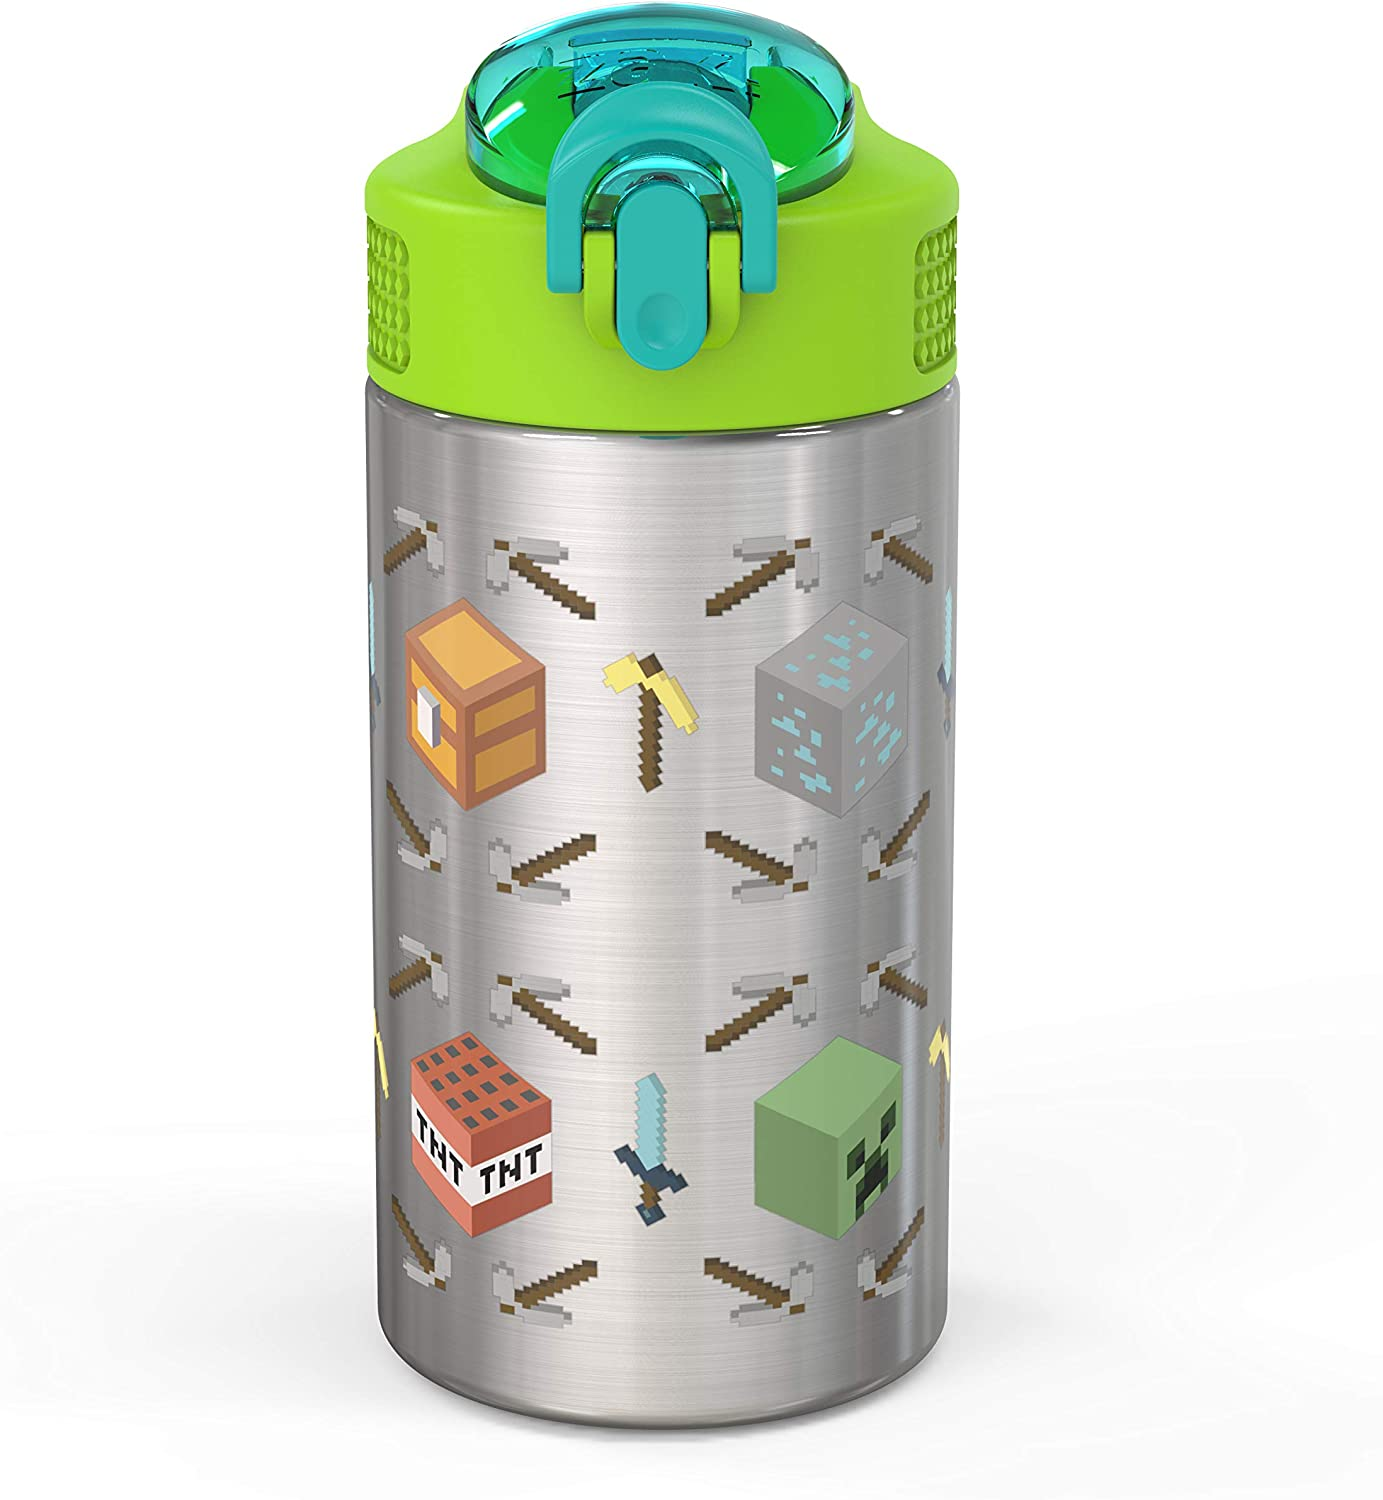 Zak Designs 15.5oz Minecraft 18/8 Stainless Steel Kids Water Bottle with Flip-up Straw Spout and Locking Spout Cover, Durable Cup for Sports or Travel (15.5oz, Minecraft)